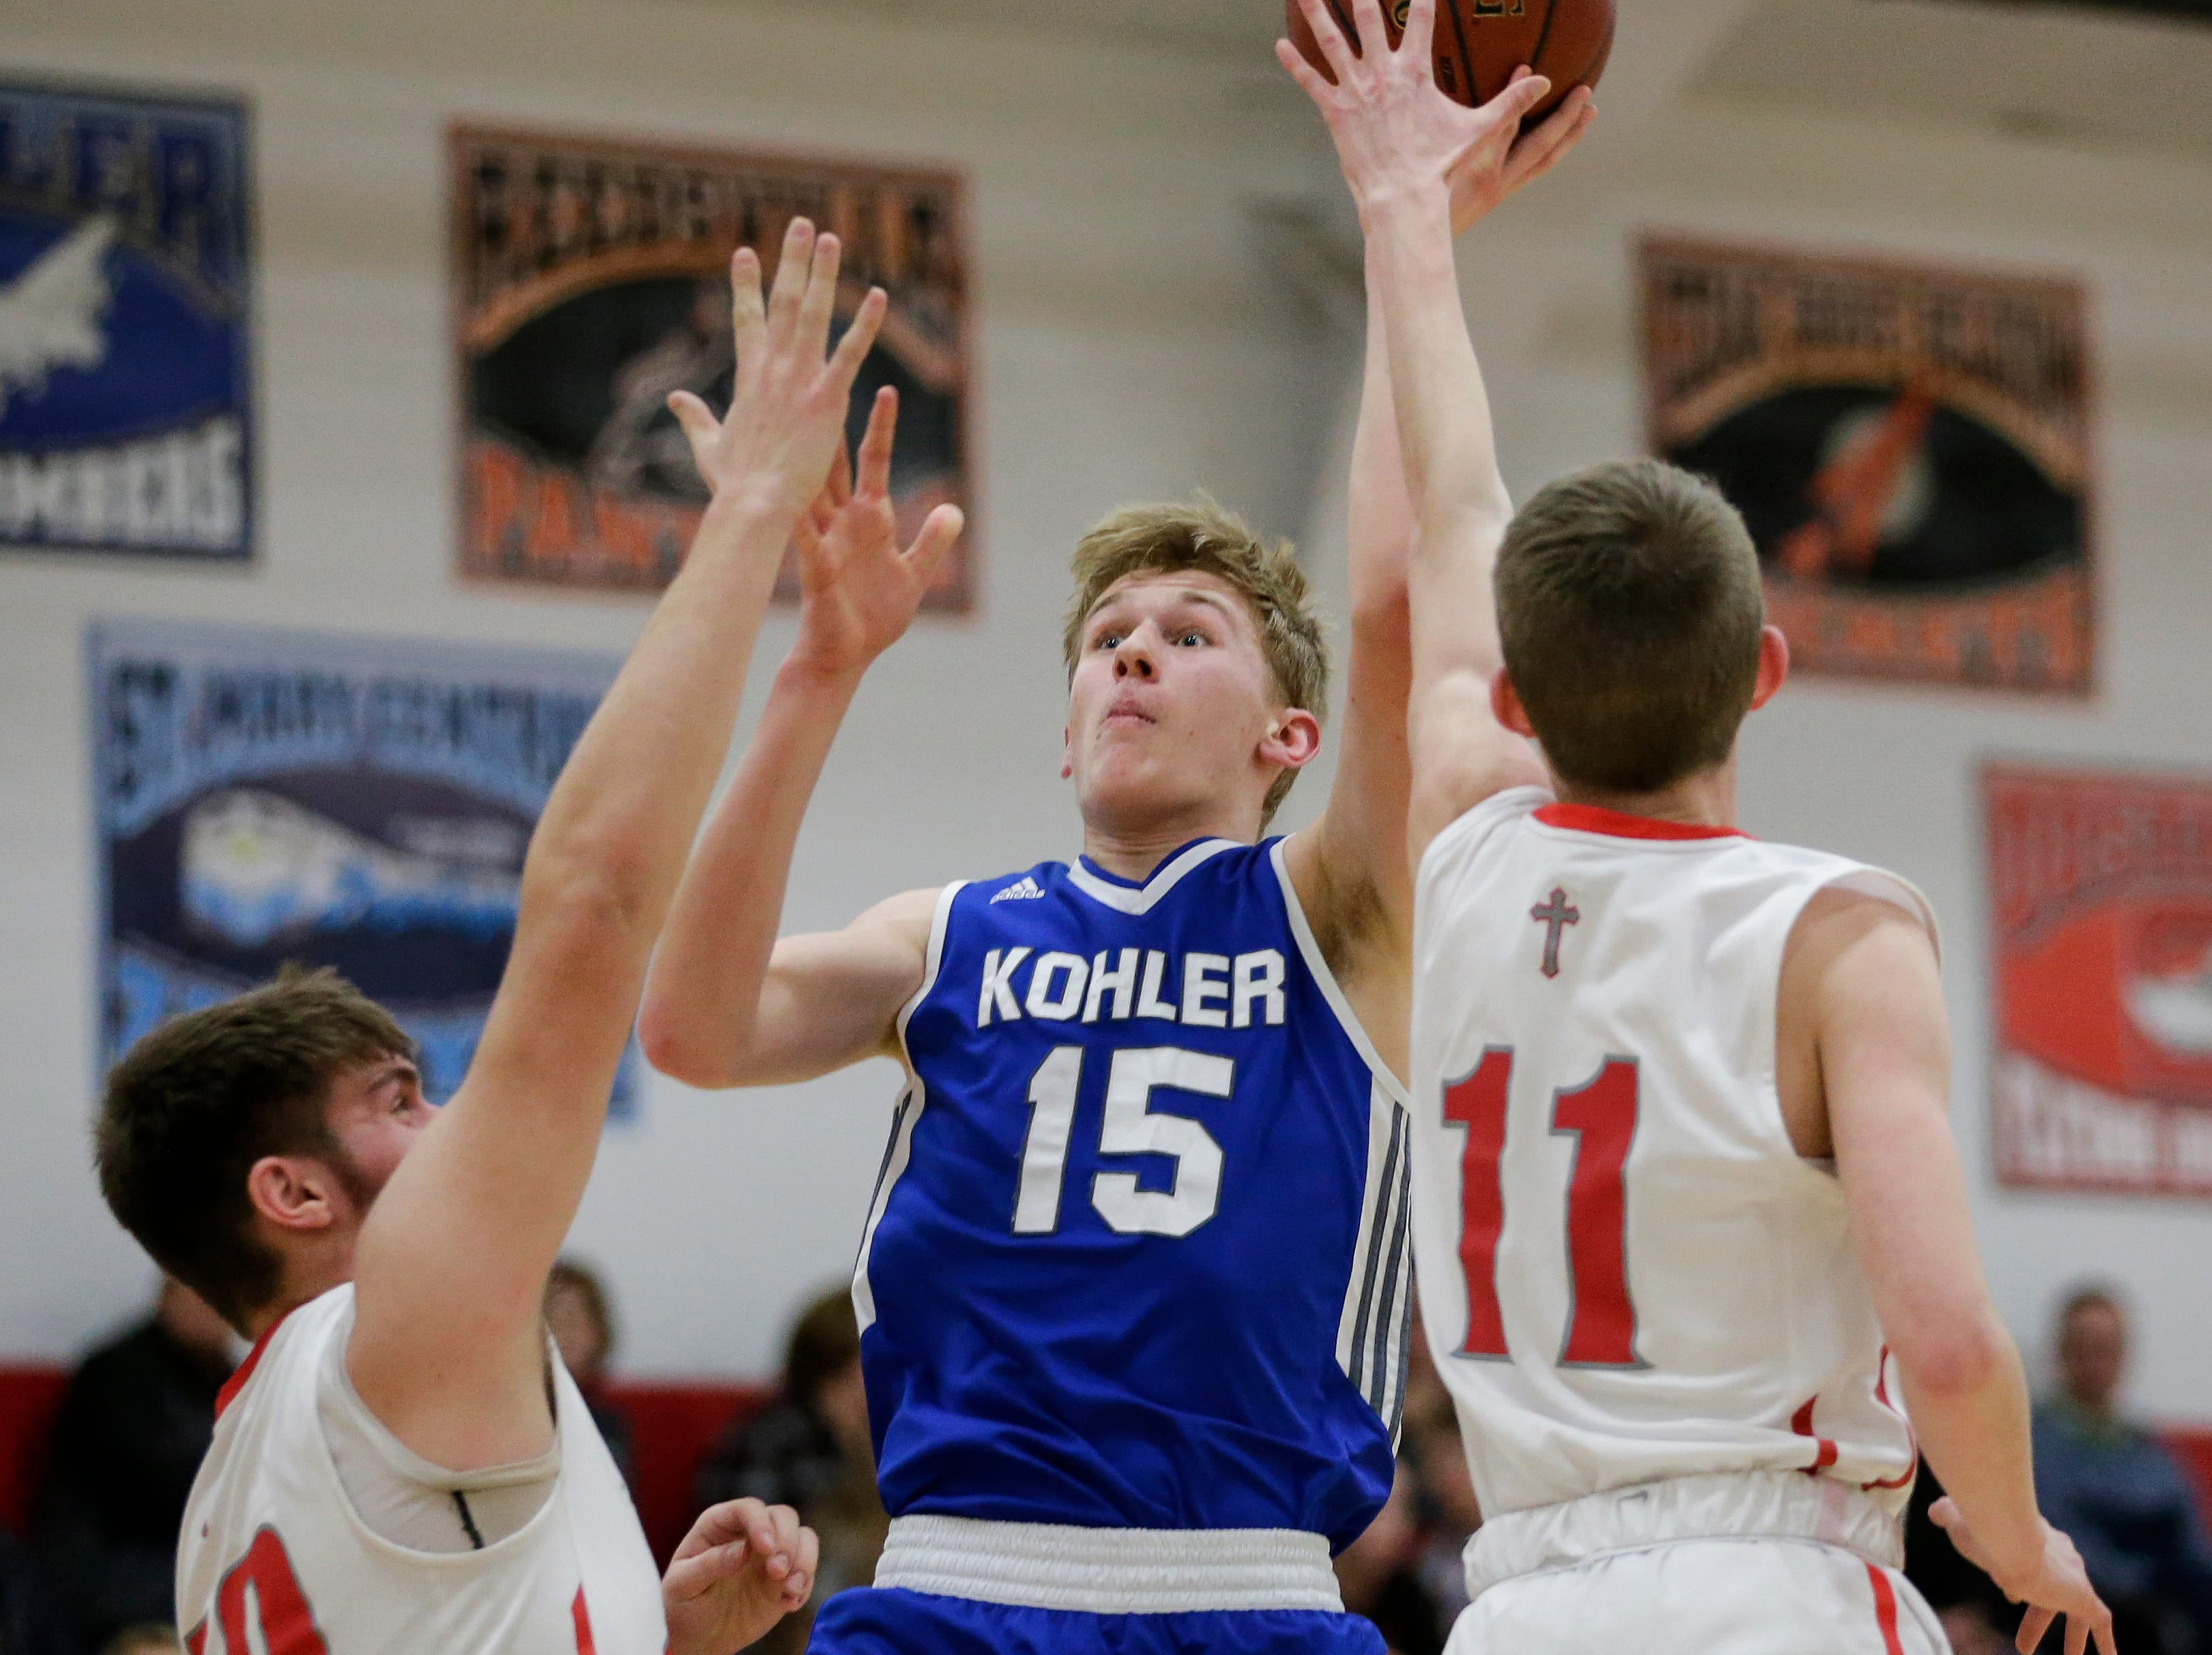 Kohler's Tyler Roeder shoots against Manitowoc Lutheran at Manitowoc Lutheran High School Friday, January 18, 2019, in Manitowoc, Wis. Joshua Clark/USA TODAY NETWORK-Wisconsin